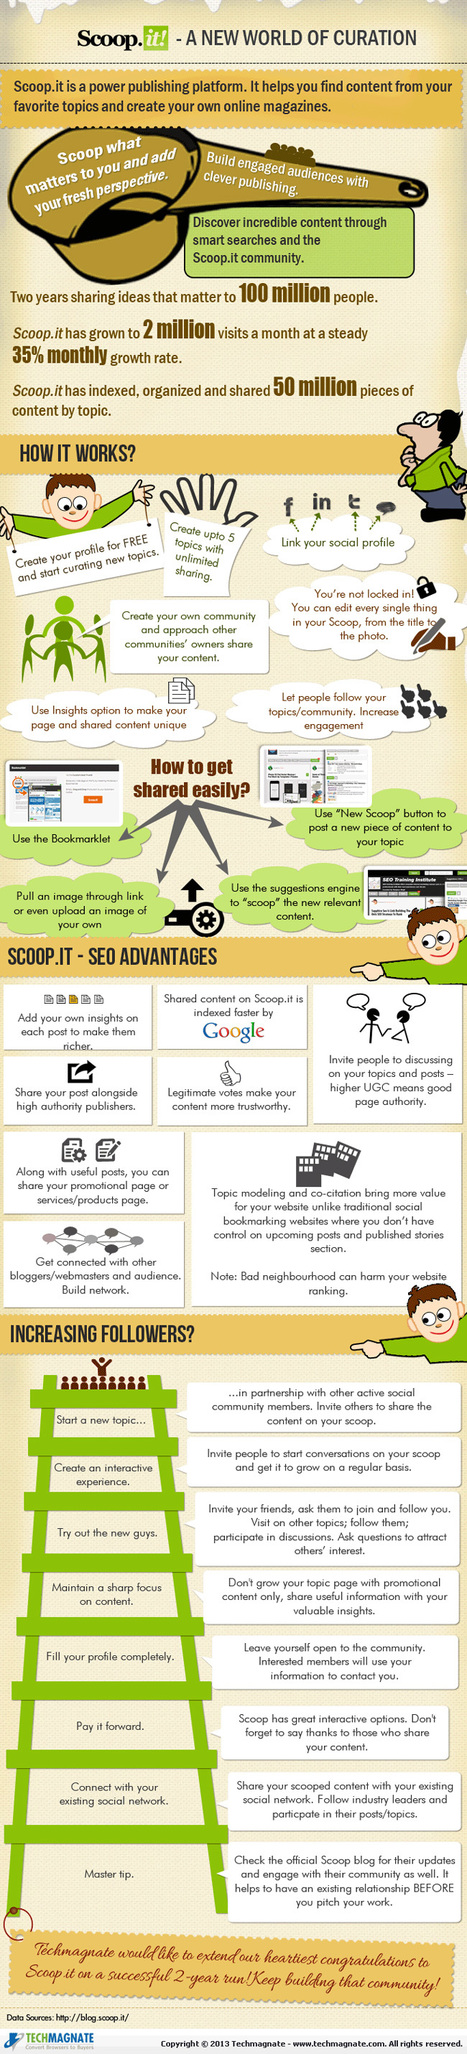 Scoop.It for SEO – A New World of Curation [Infographic] | Self Promotion | Scoop.it